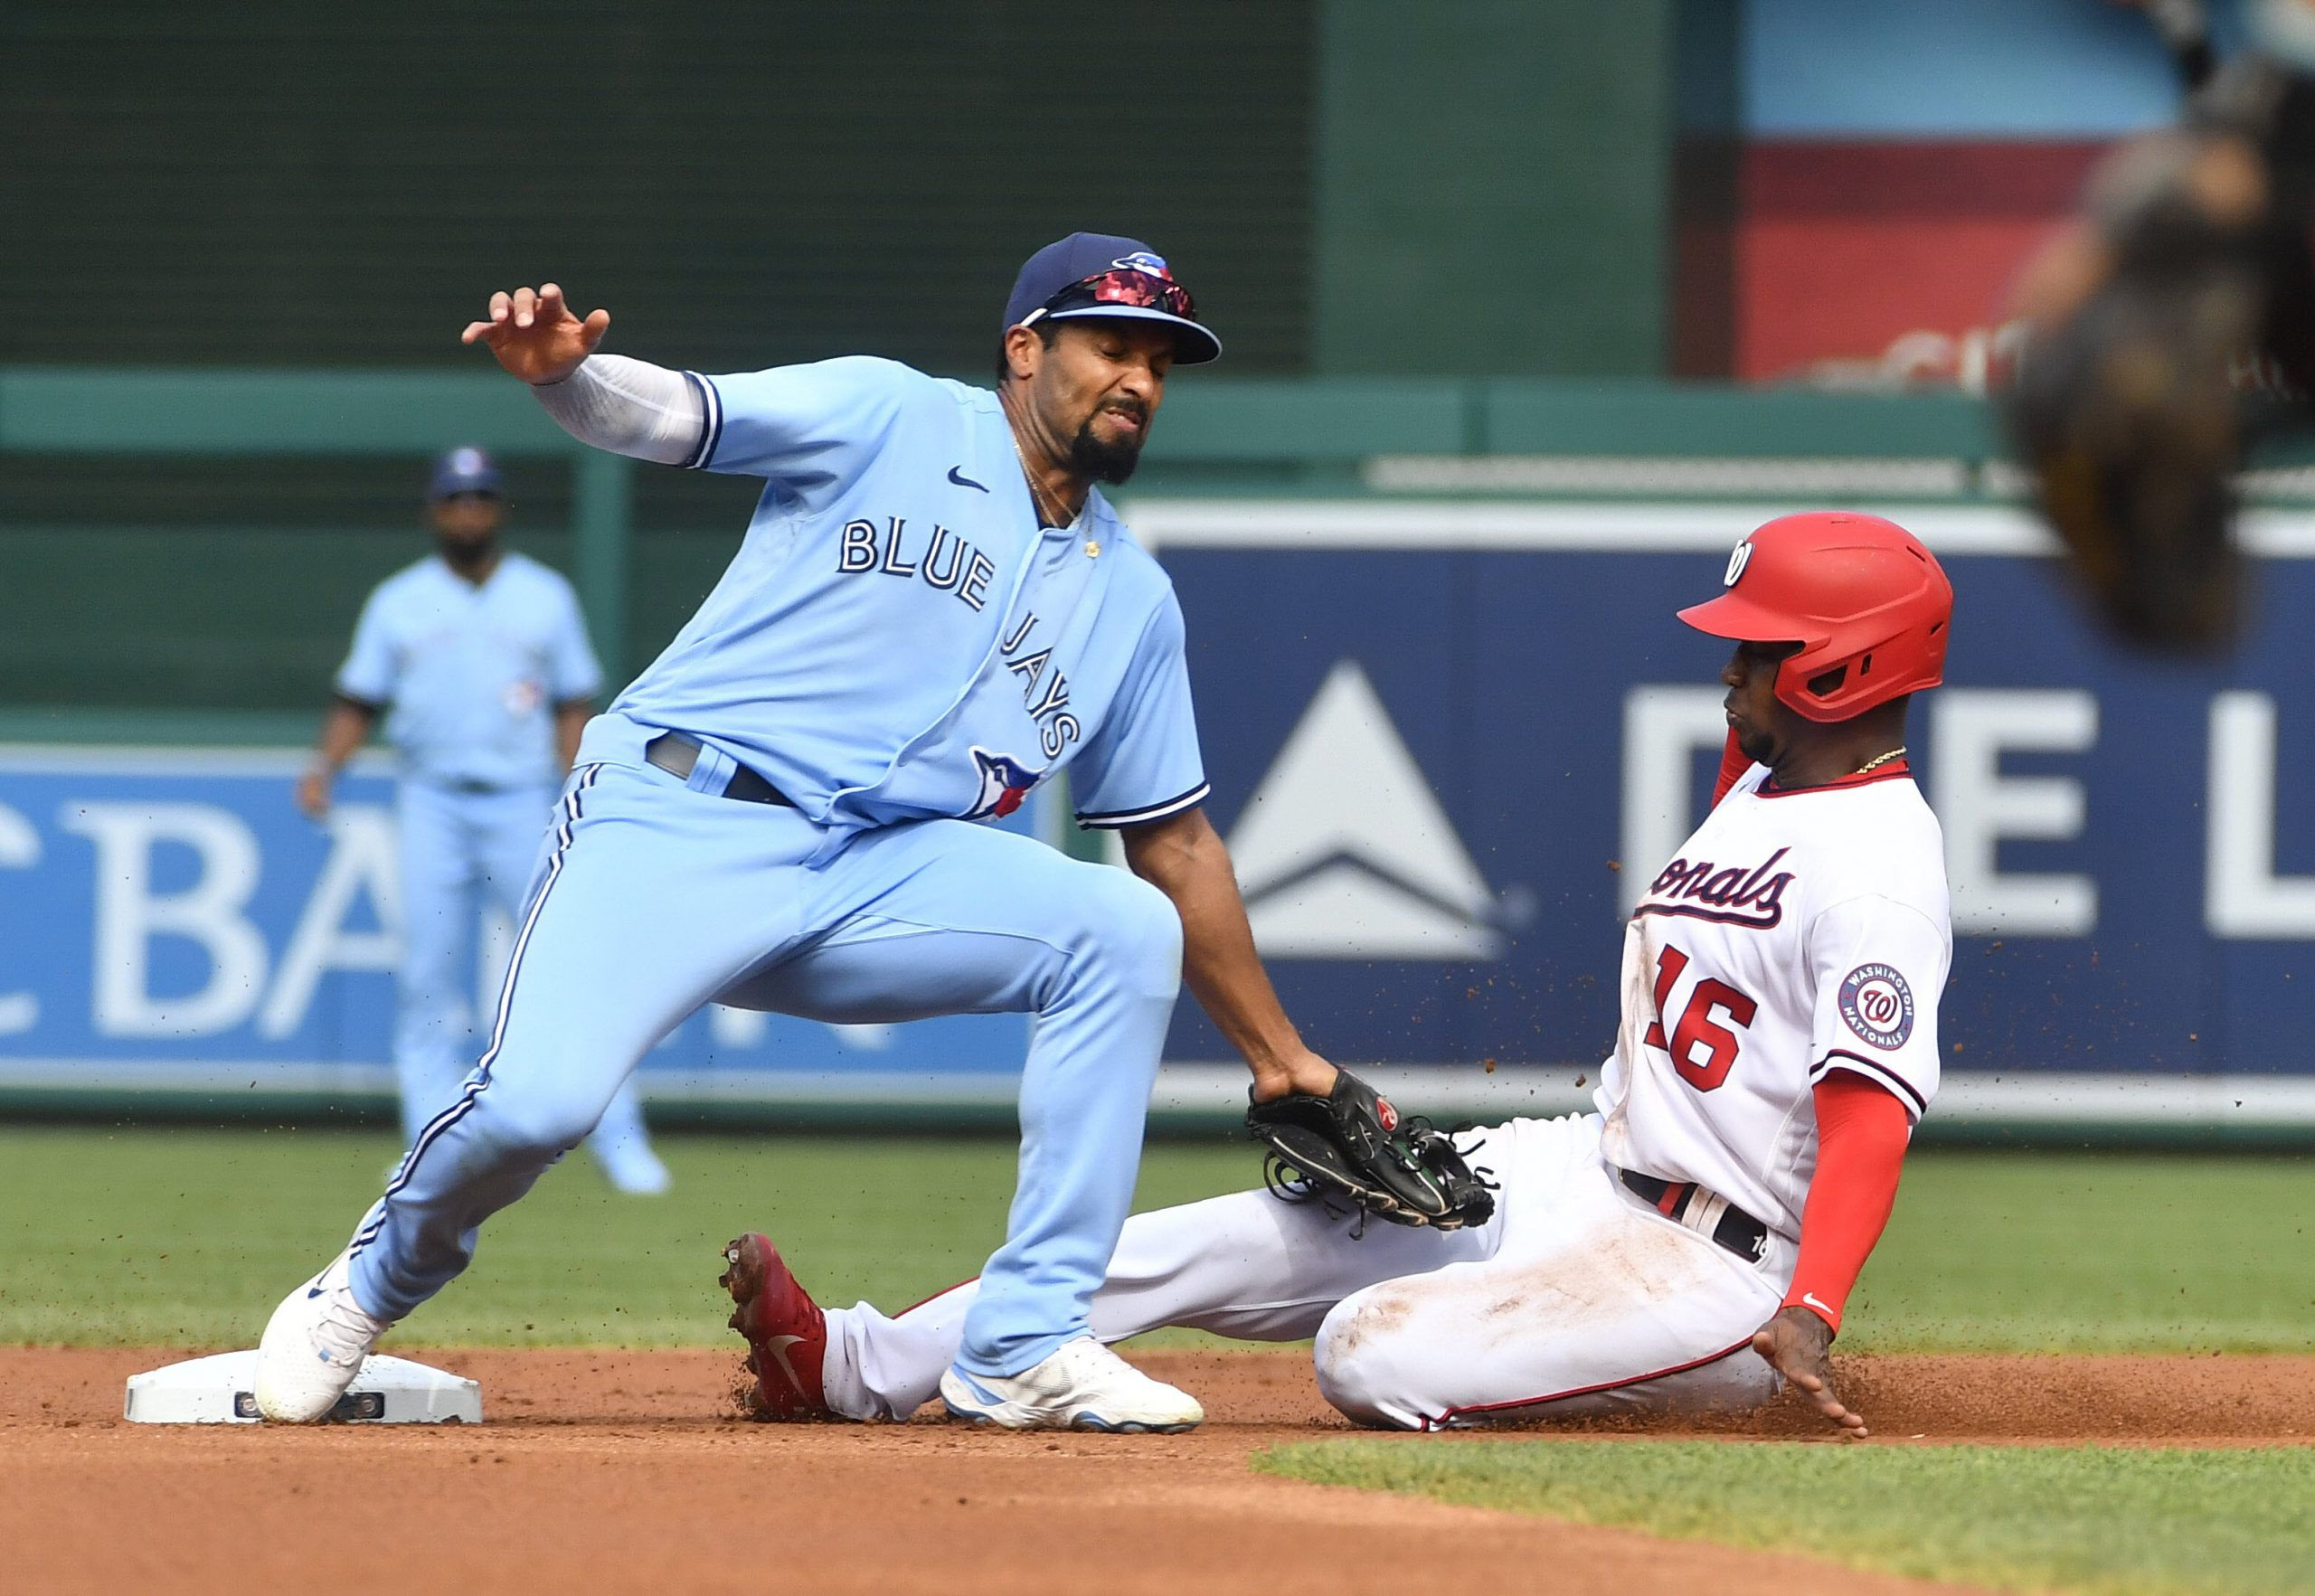 Washington Nationals' Victor Robles slides safely into second base as Blue Jays' Marcus Semien looks on during the first inning at Nationals Park on Wednesday, Aug. 18, 2021.